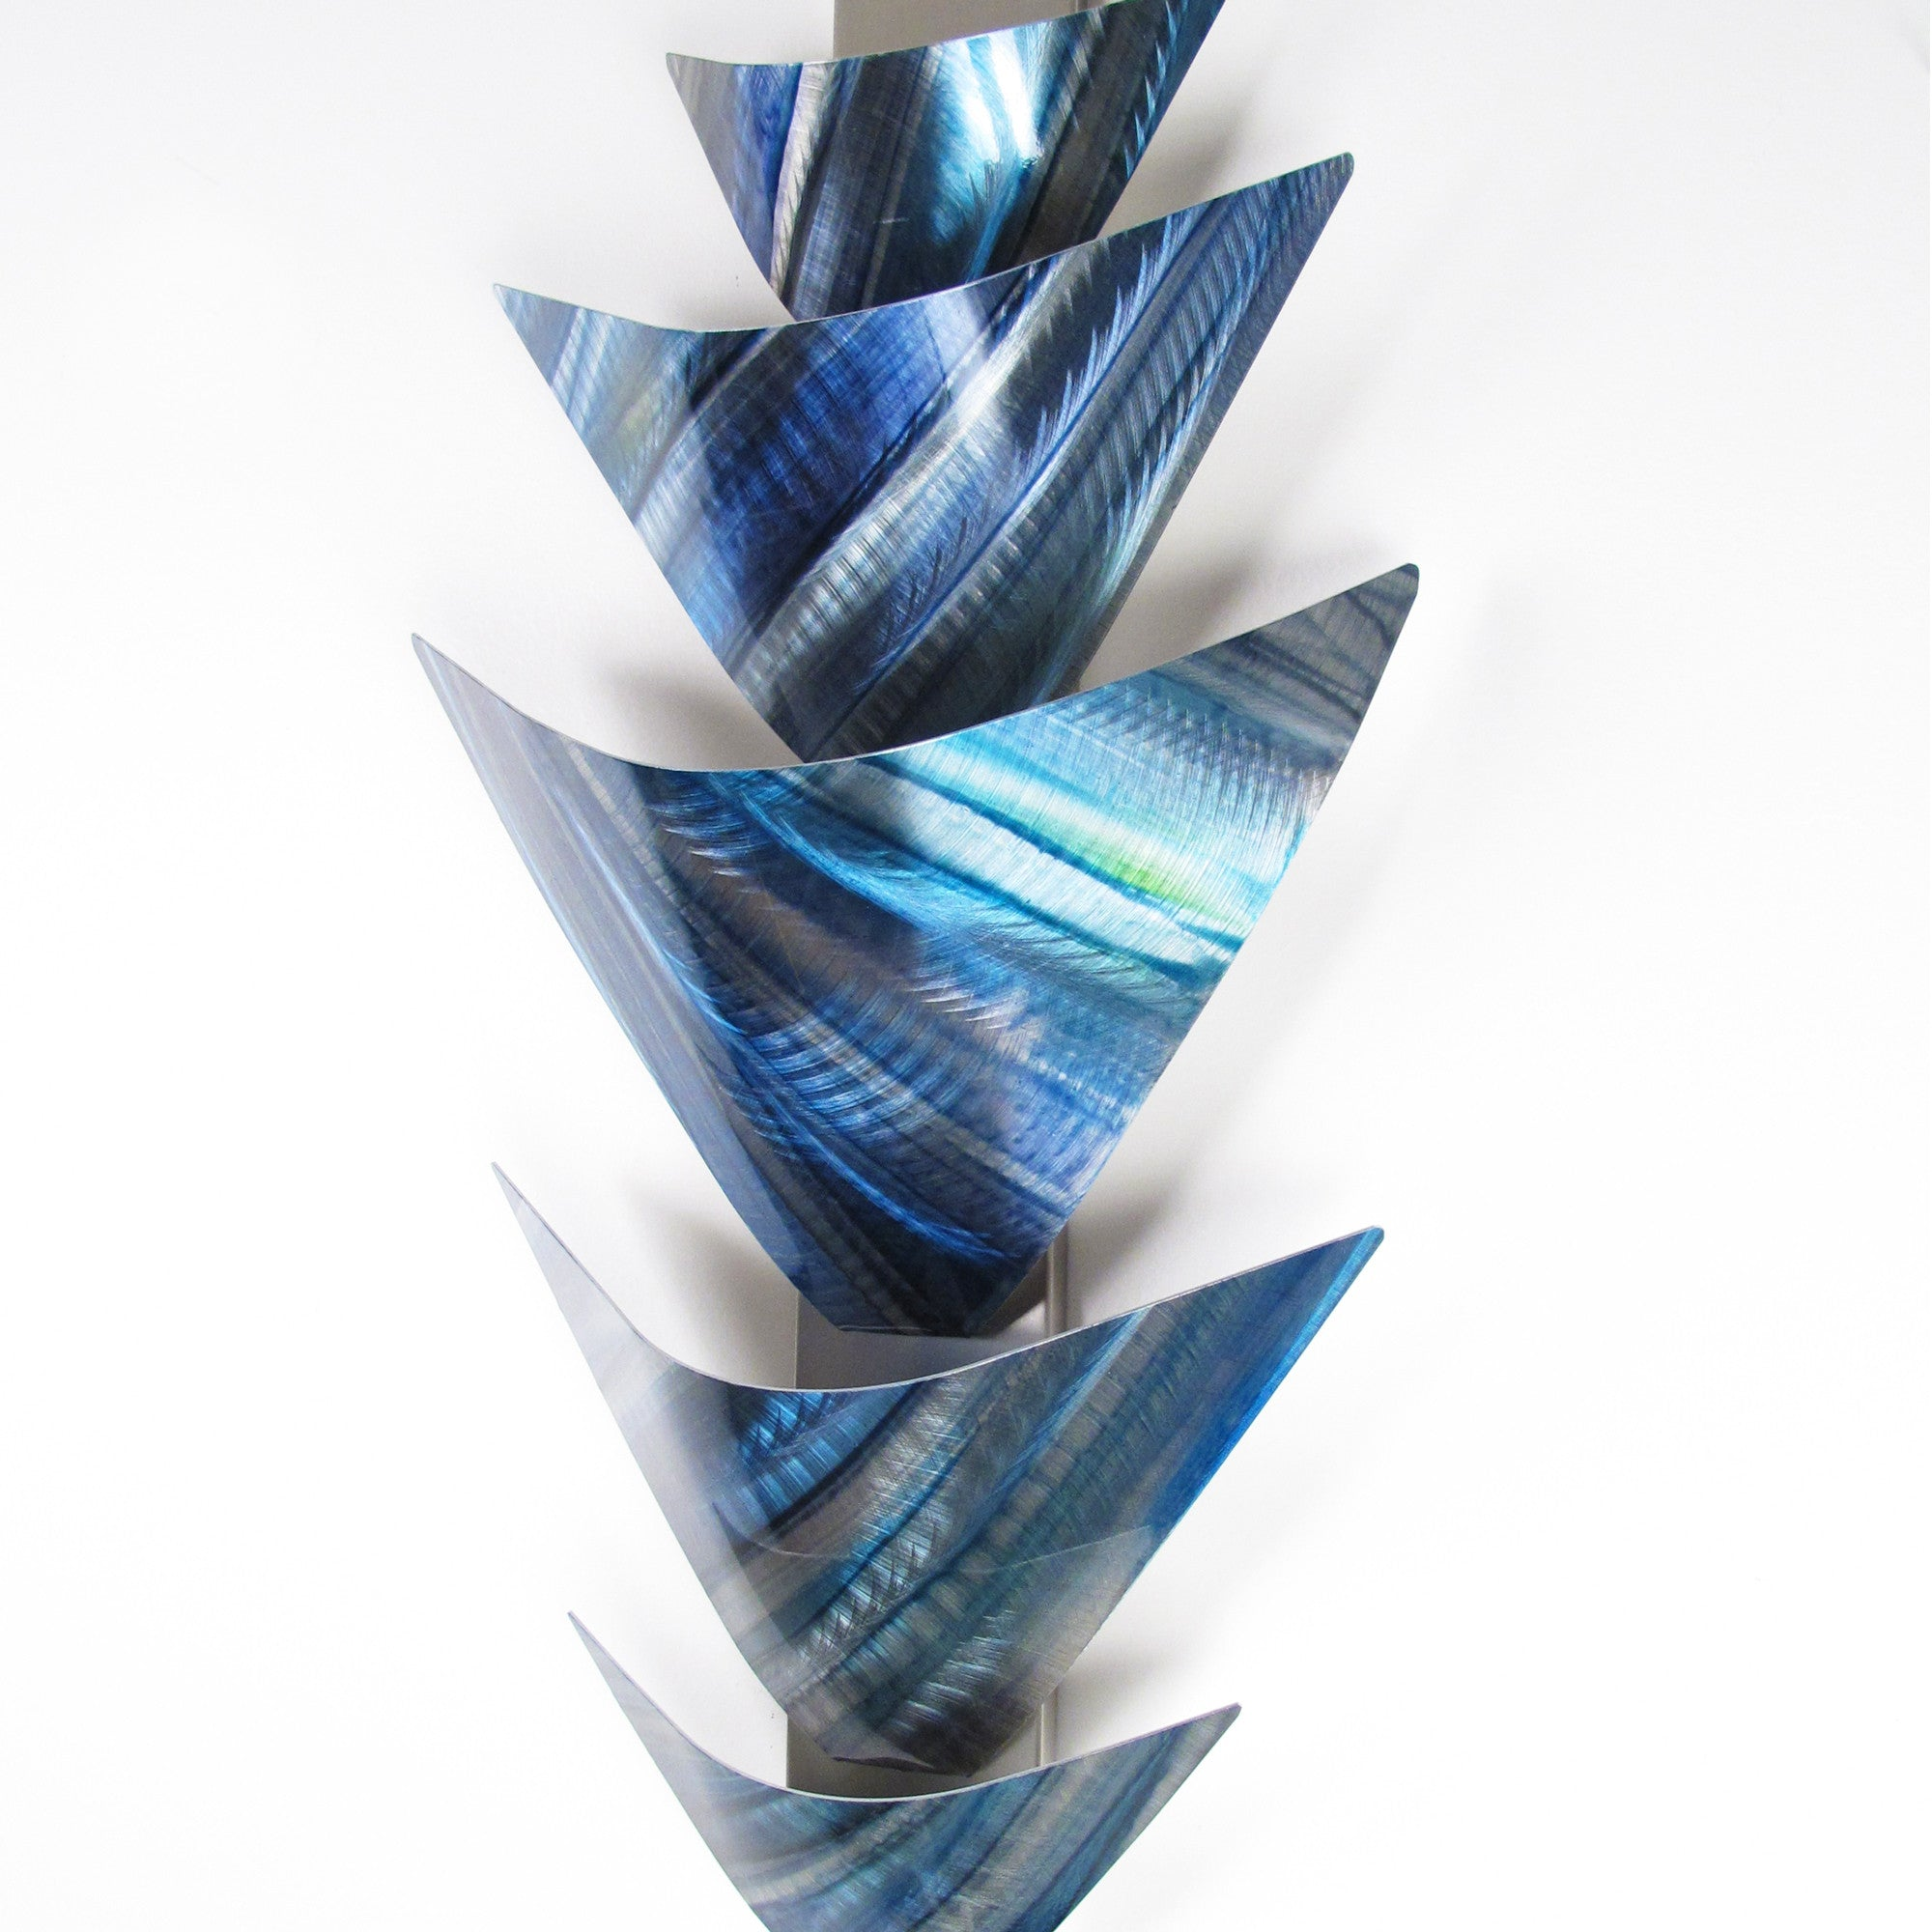 "Blue Metal Wall Art Magnificent Aurora Torchiere Series"" 40""x24"" Modern Abstract Metal Wall Art Design Inspiration"